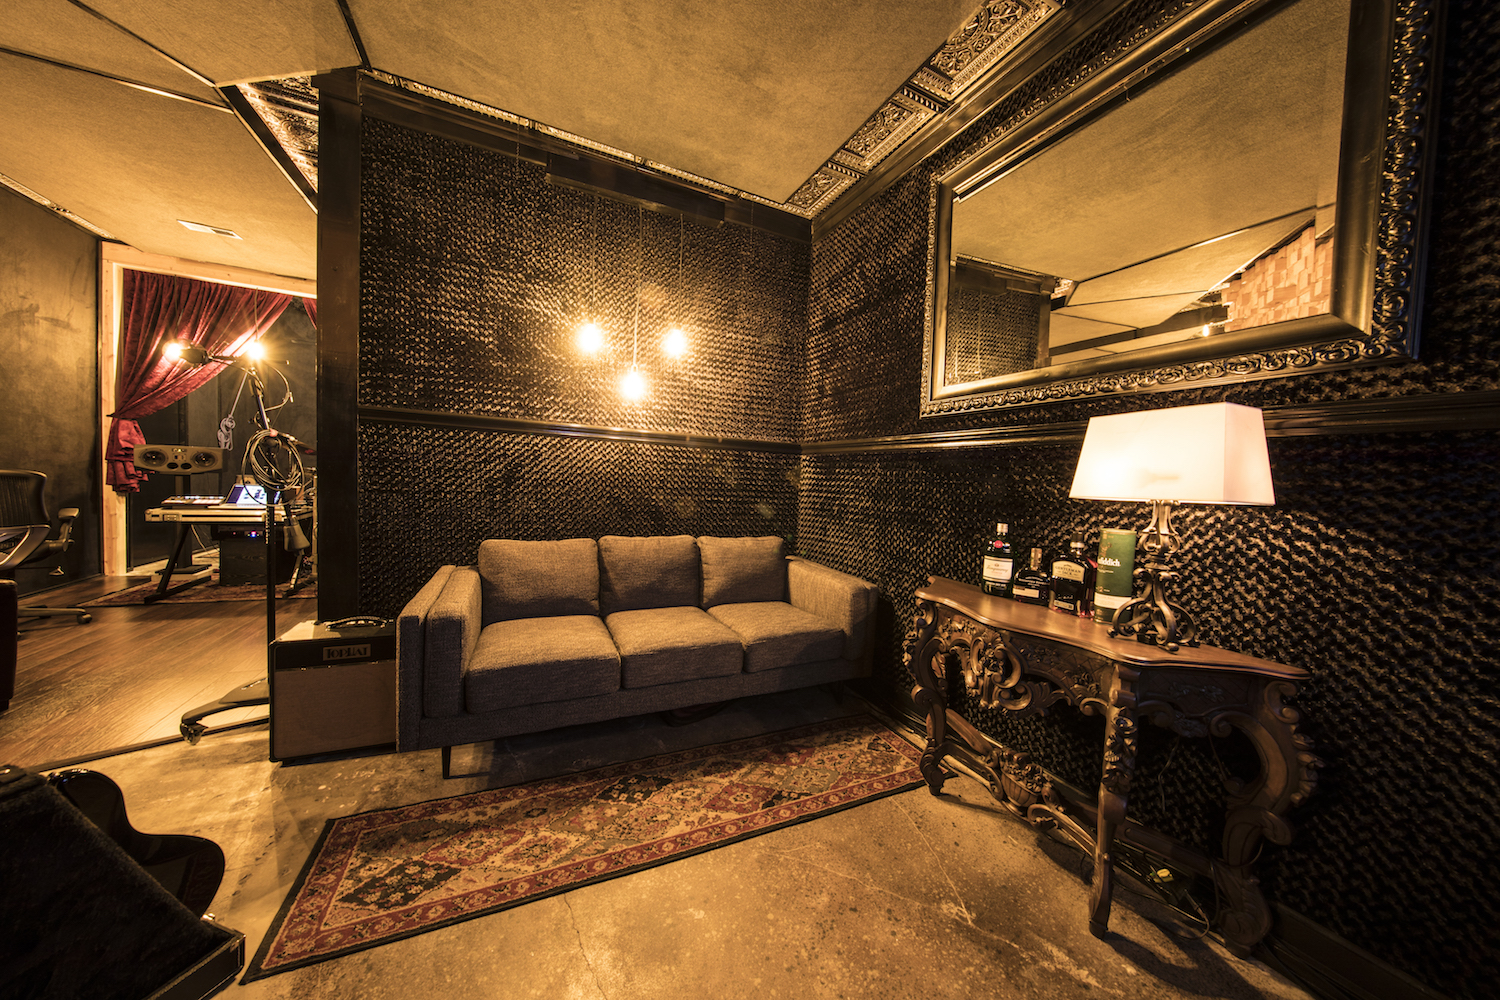 NASHVILLE - It's a dark and enigmatic mood in the Nashville room where you can soak up the sophisticated nightclub ambience.